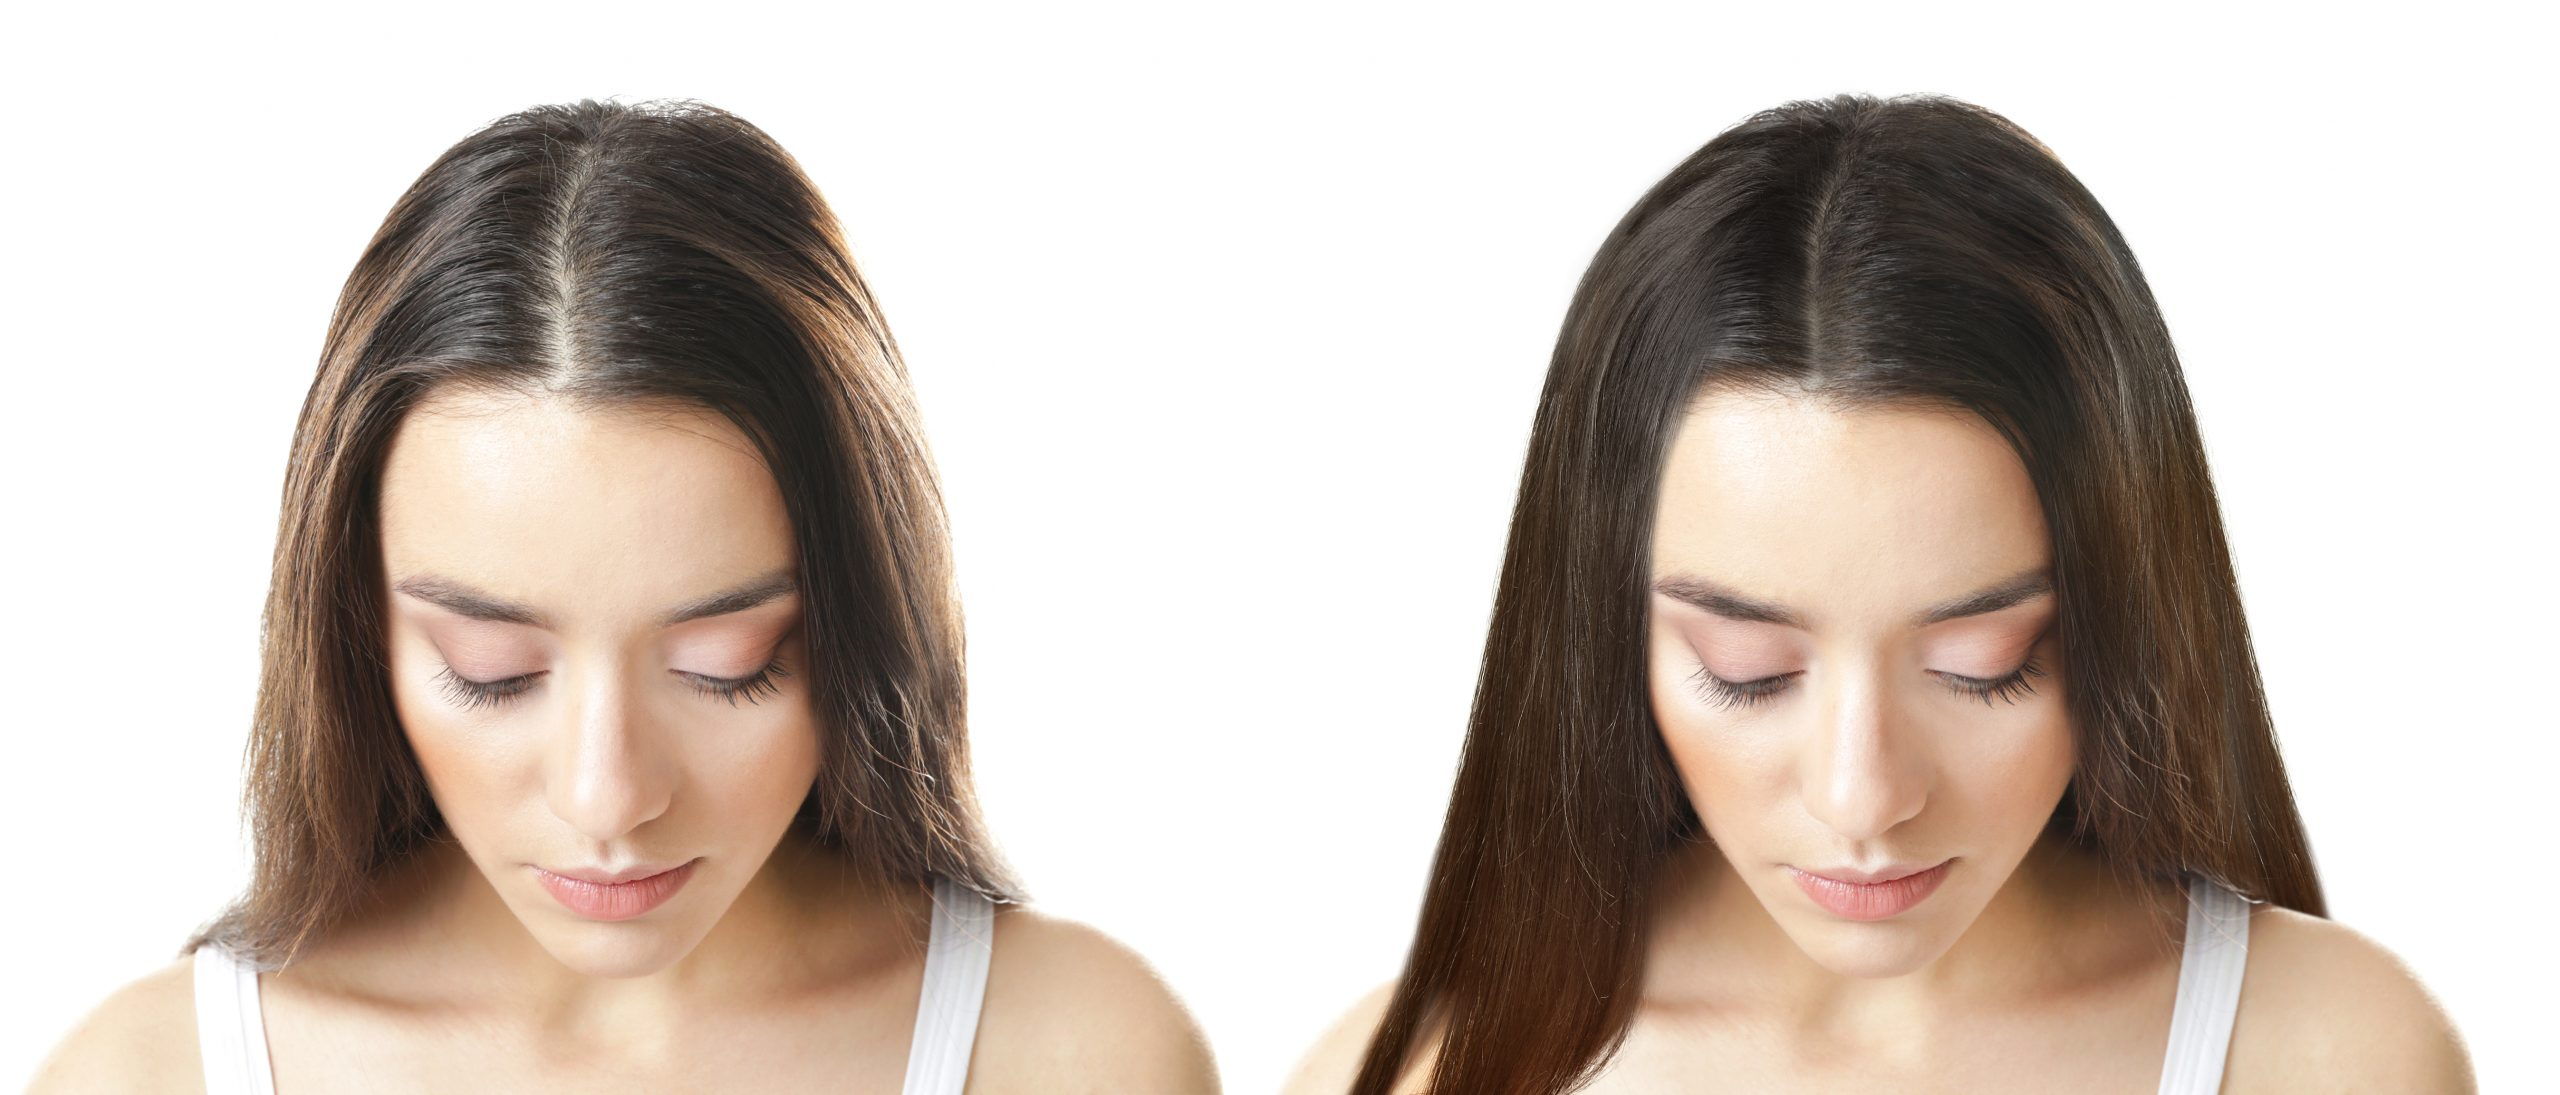 woman before after hair serum